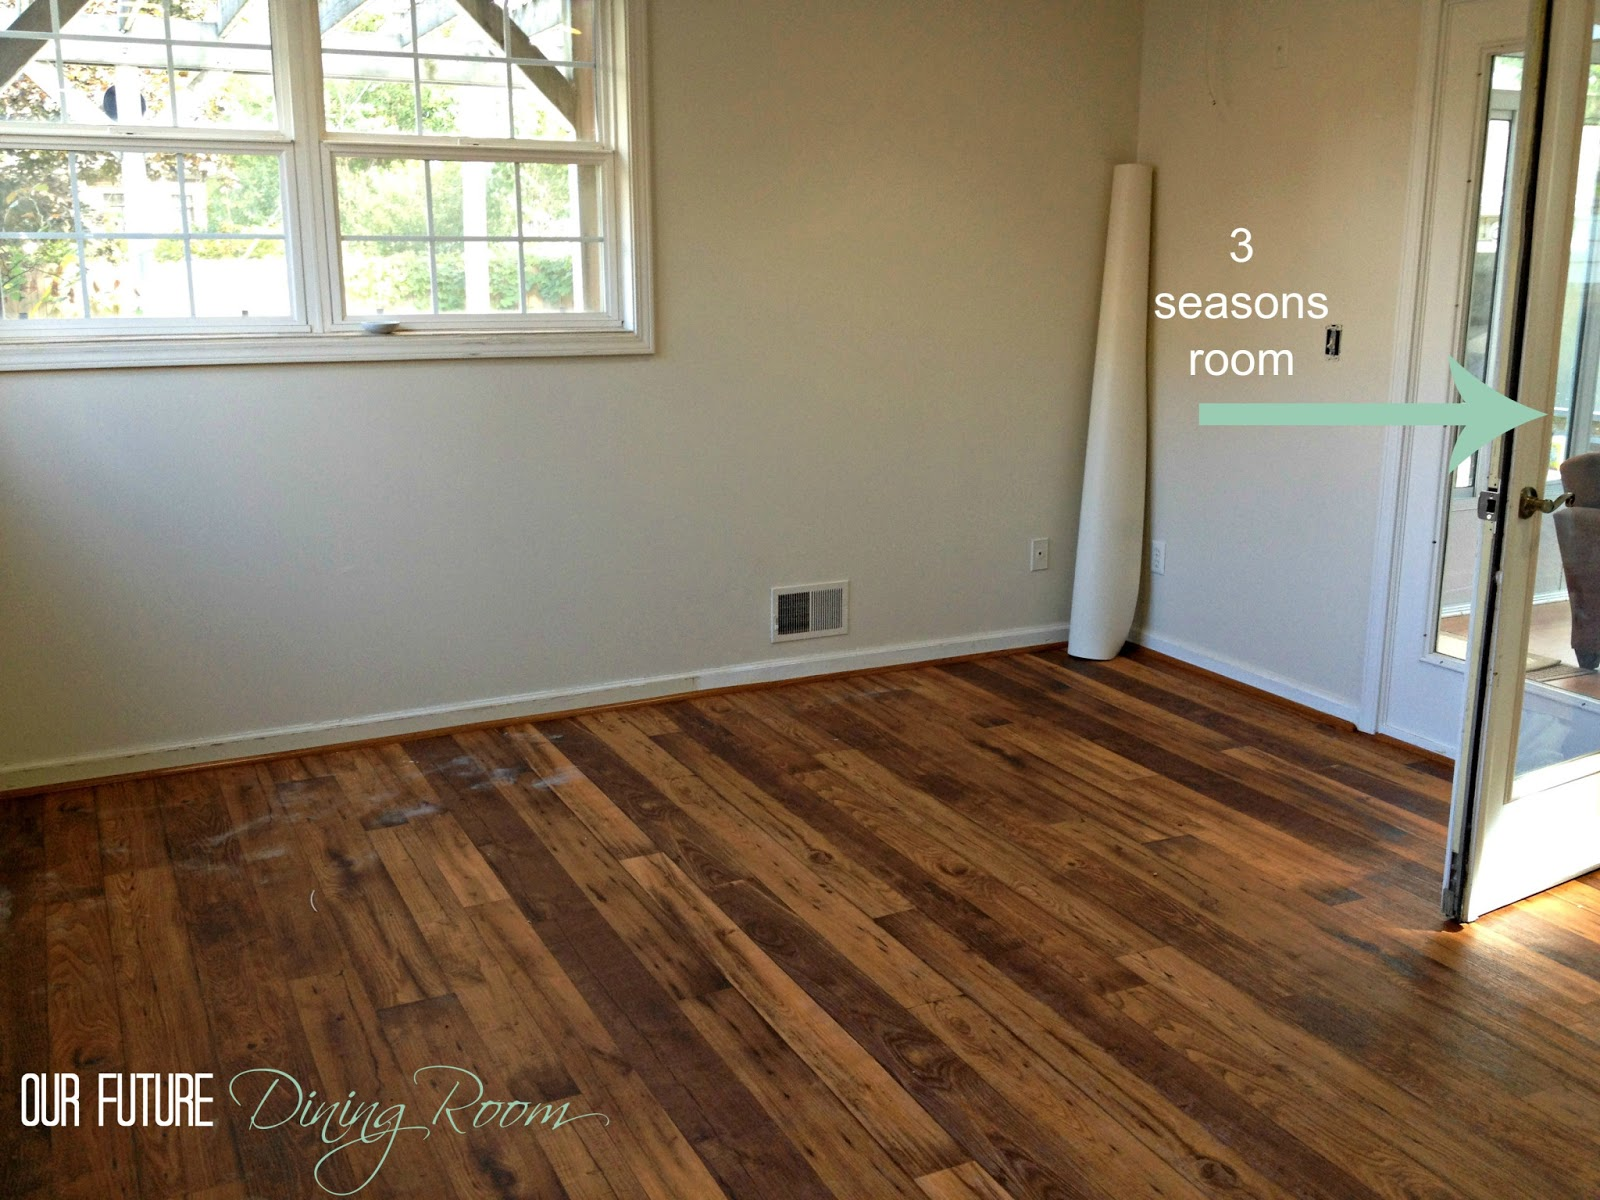 Hardwood Floor Vinyl : kitchen+dining+room+wide+plank+hardwood+flooring+vinyl.jpg